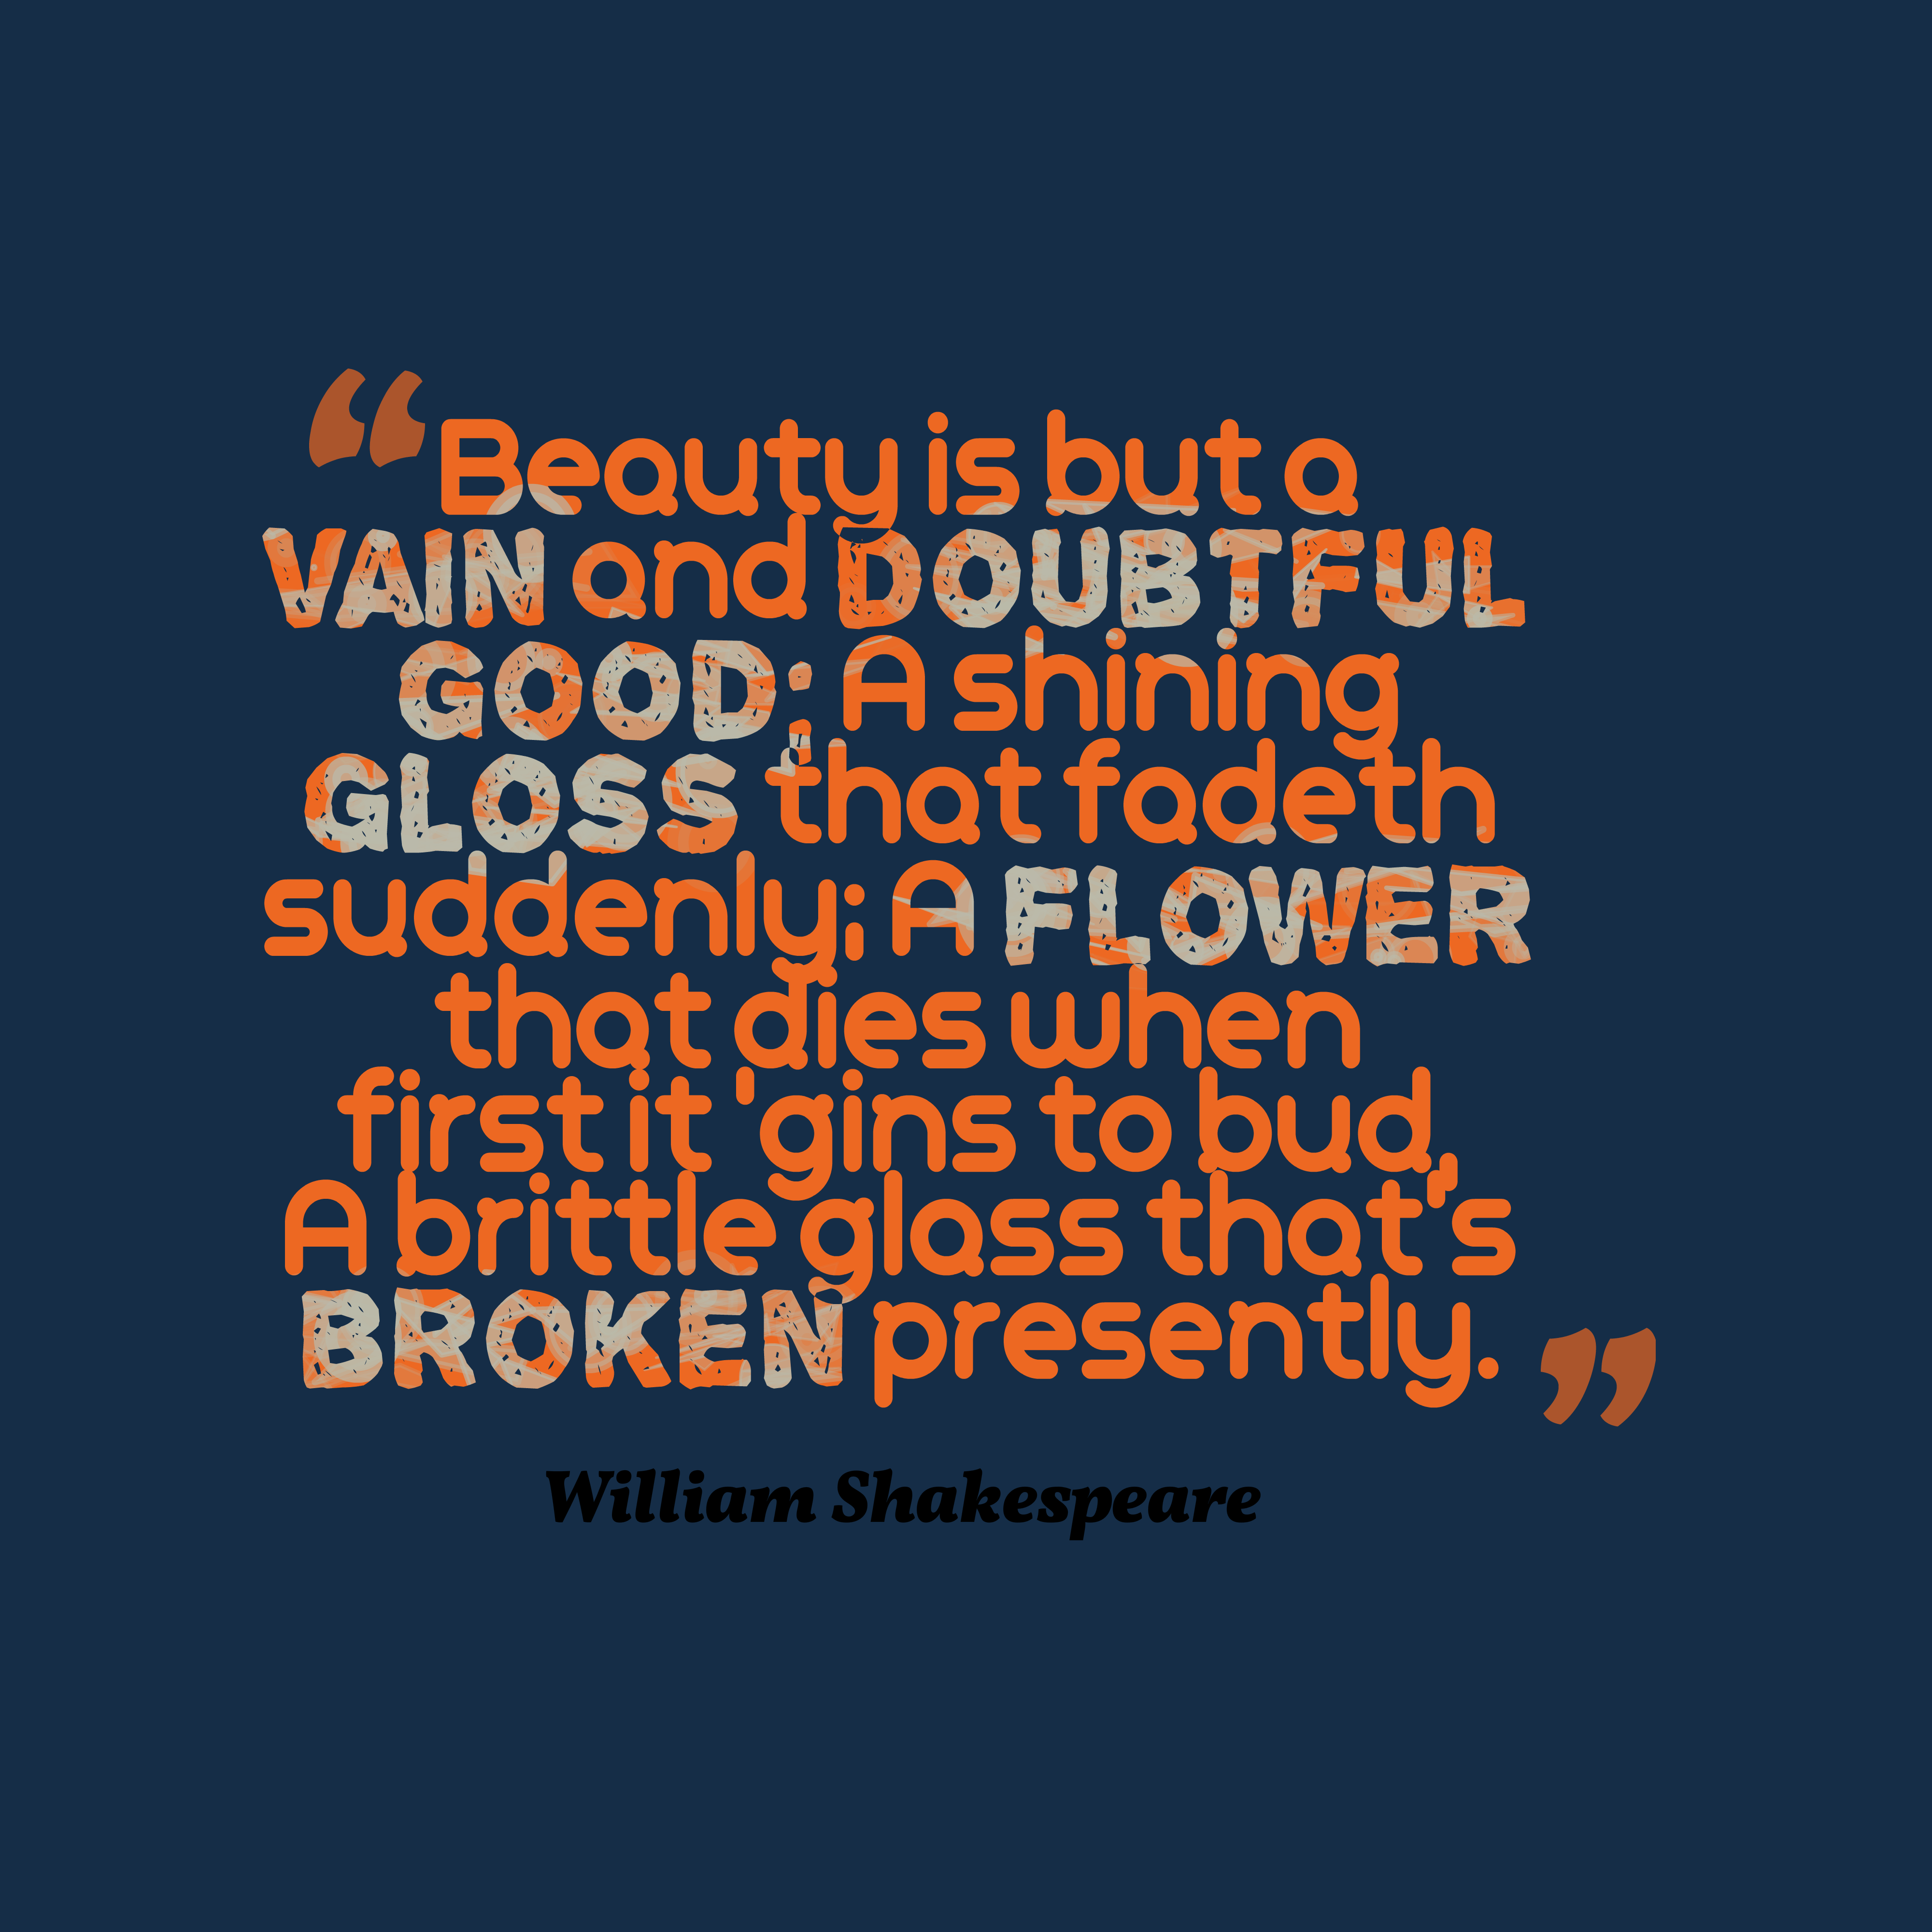 Quotes On Beauty Picture William Shakespeare Quote About Beauty Quotescover